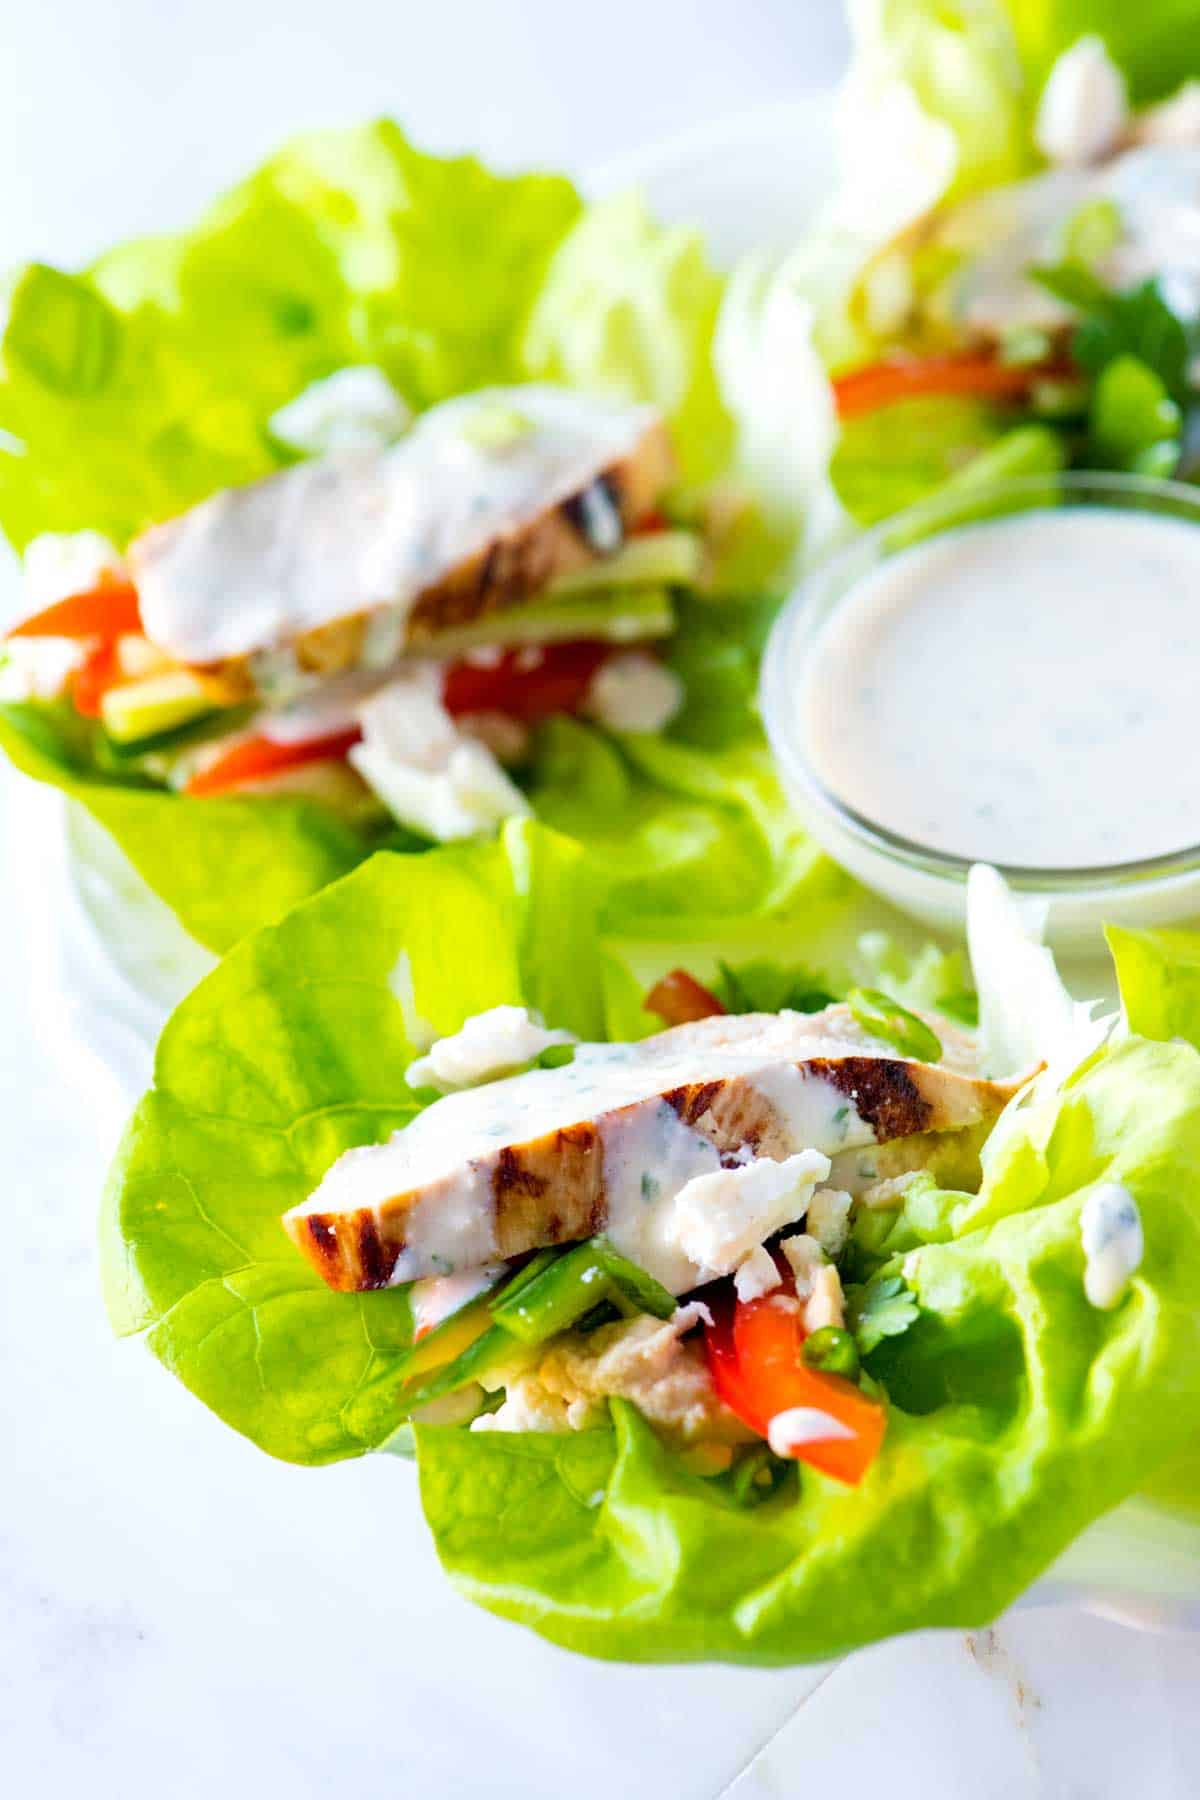 How to Make Healthy Lettuce Wraps with Chicken and Hummus